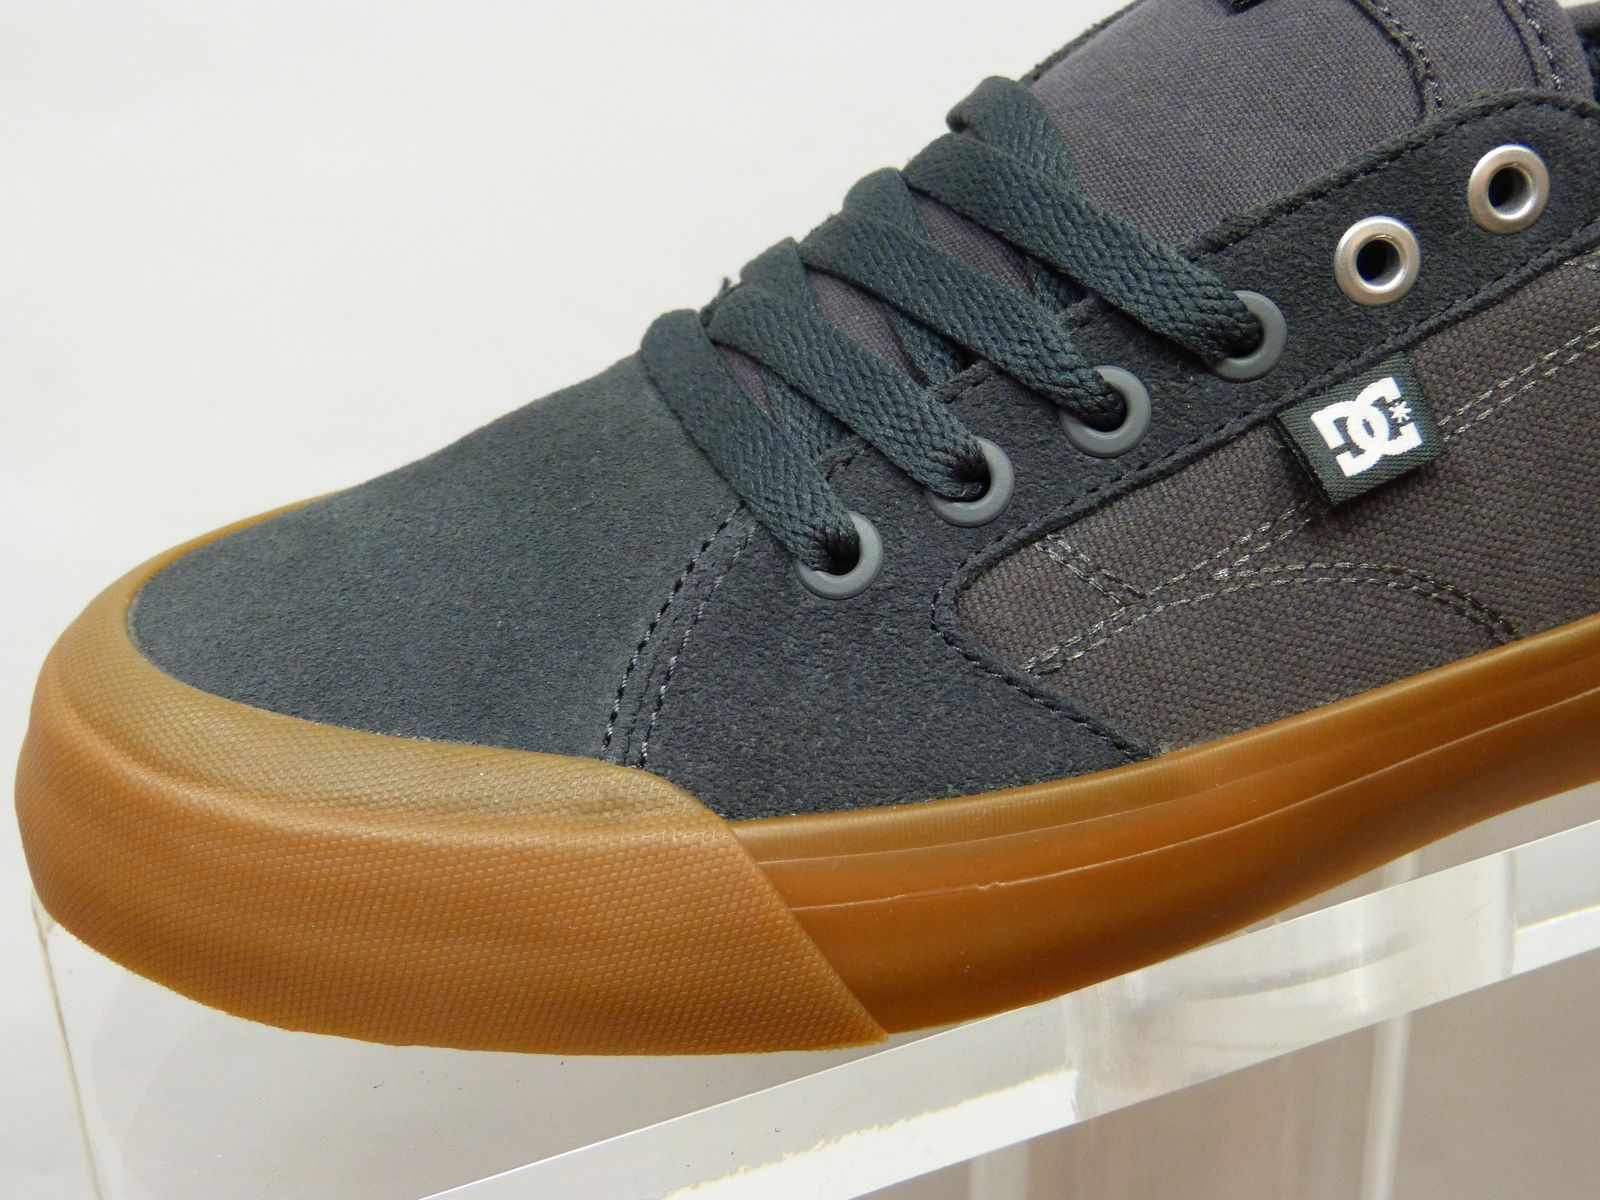 DC Shoes Evan Smith